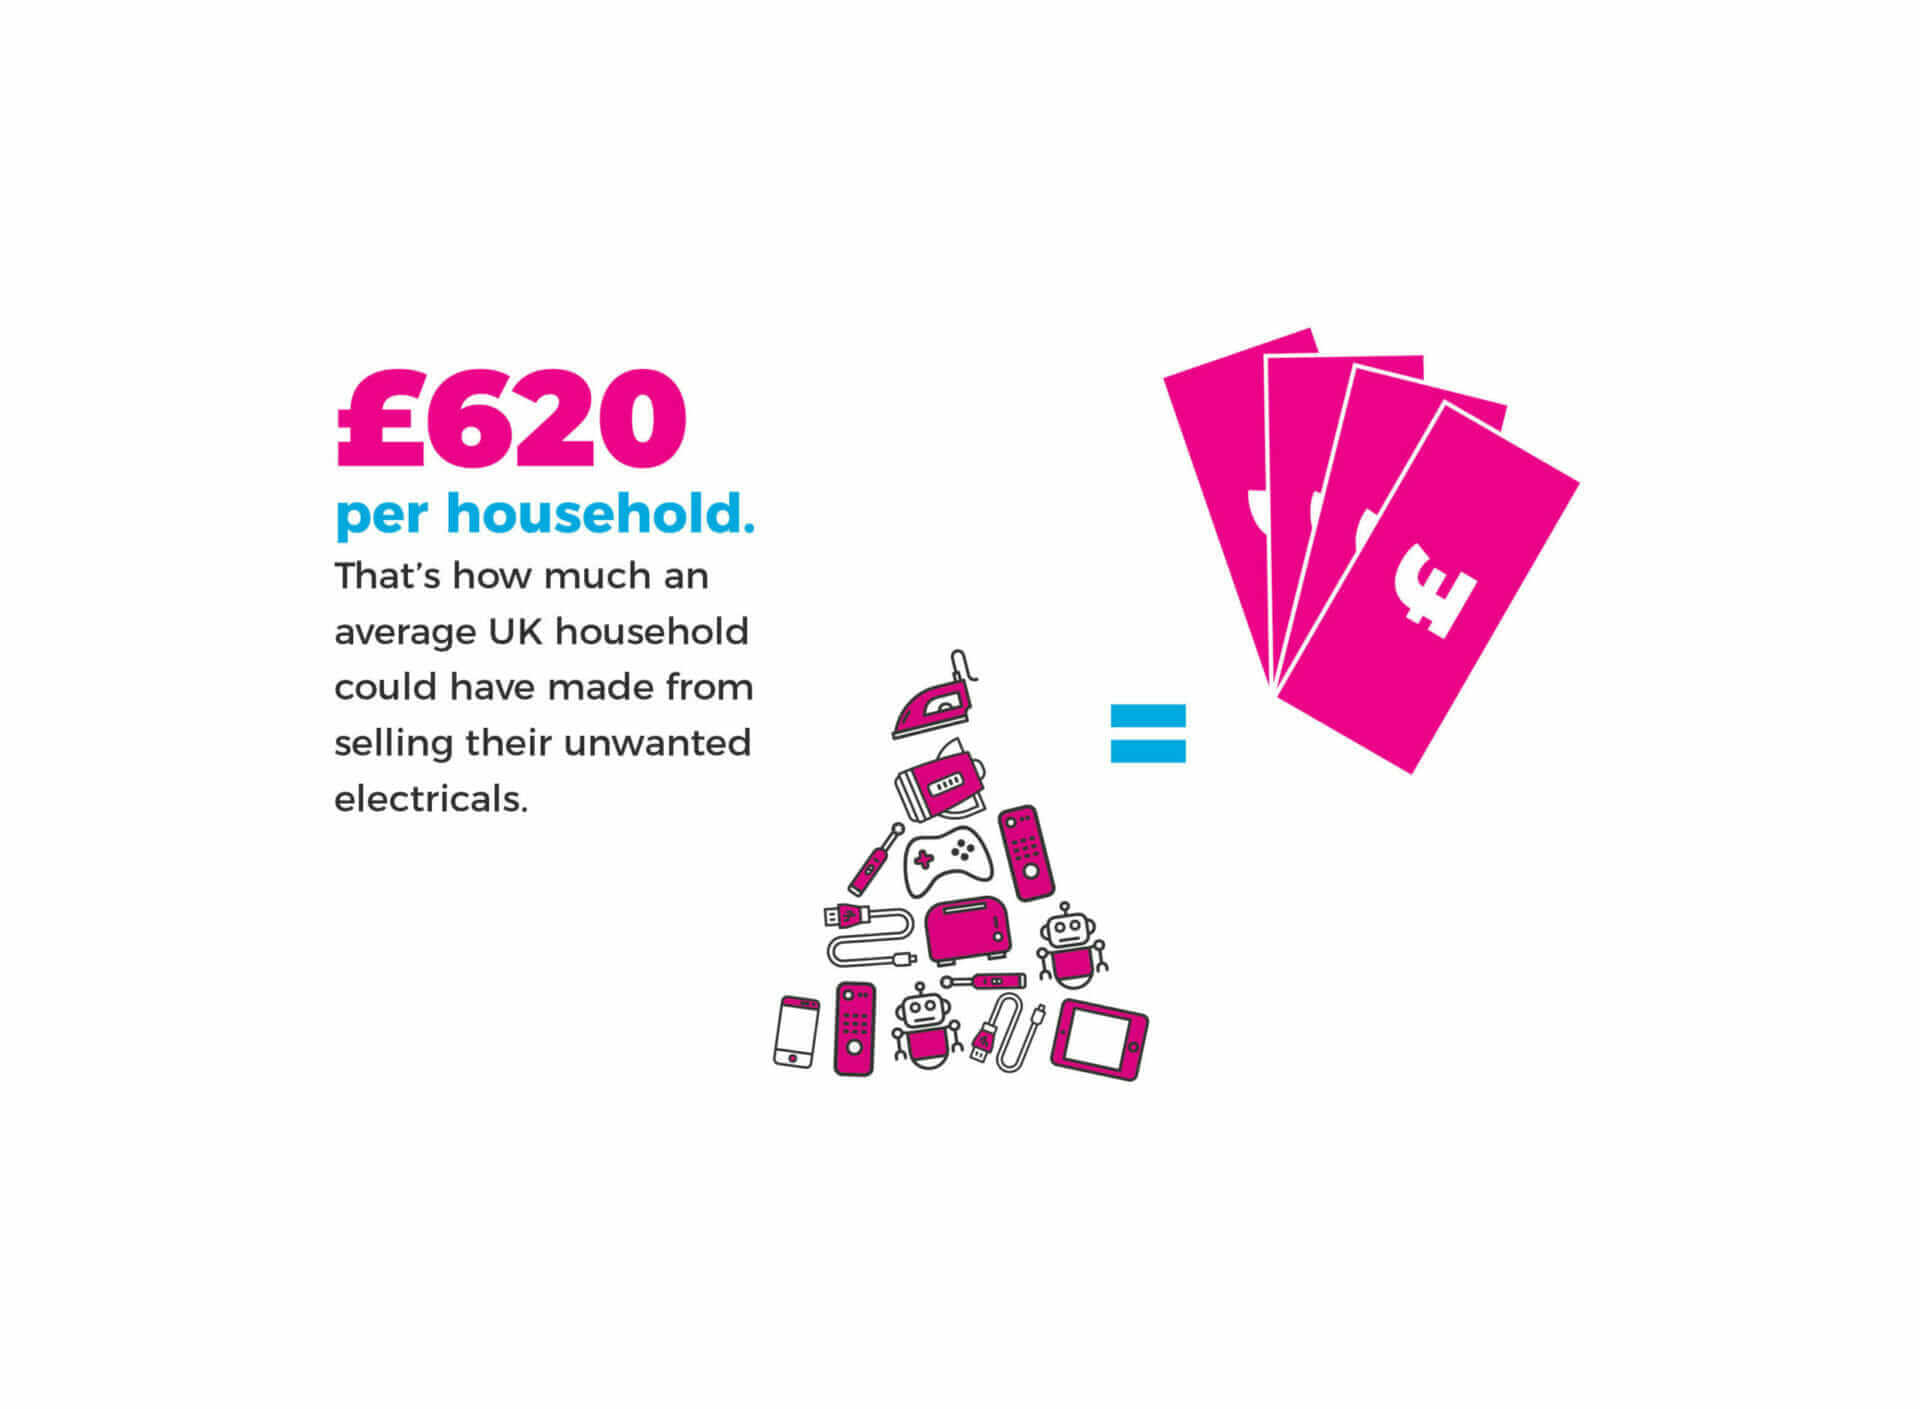 illustration showing the average UK household could have sold their unwanted electricals for £620